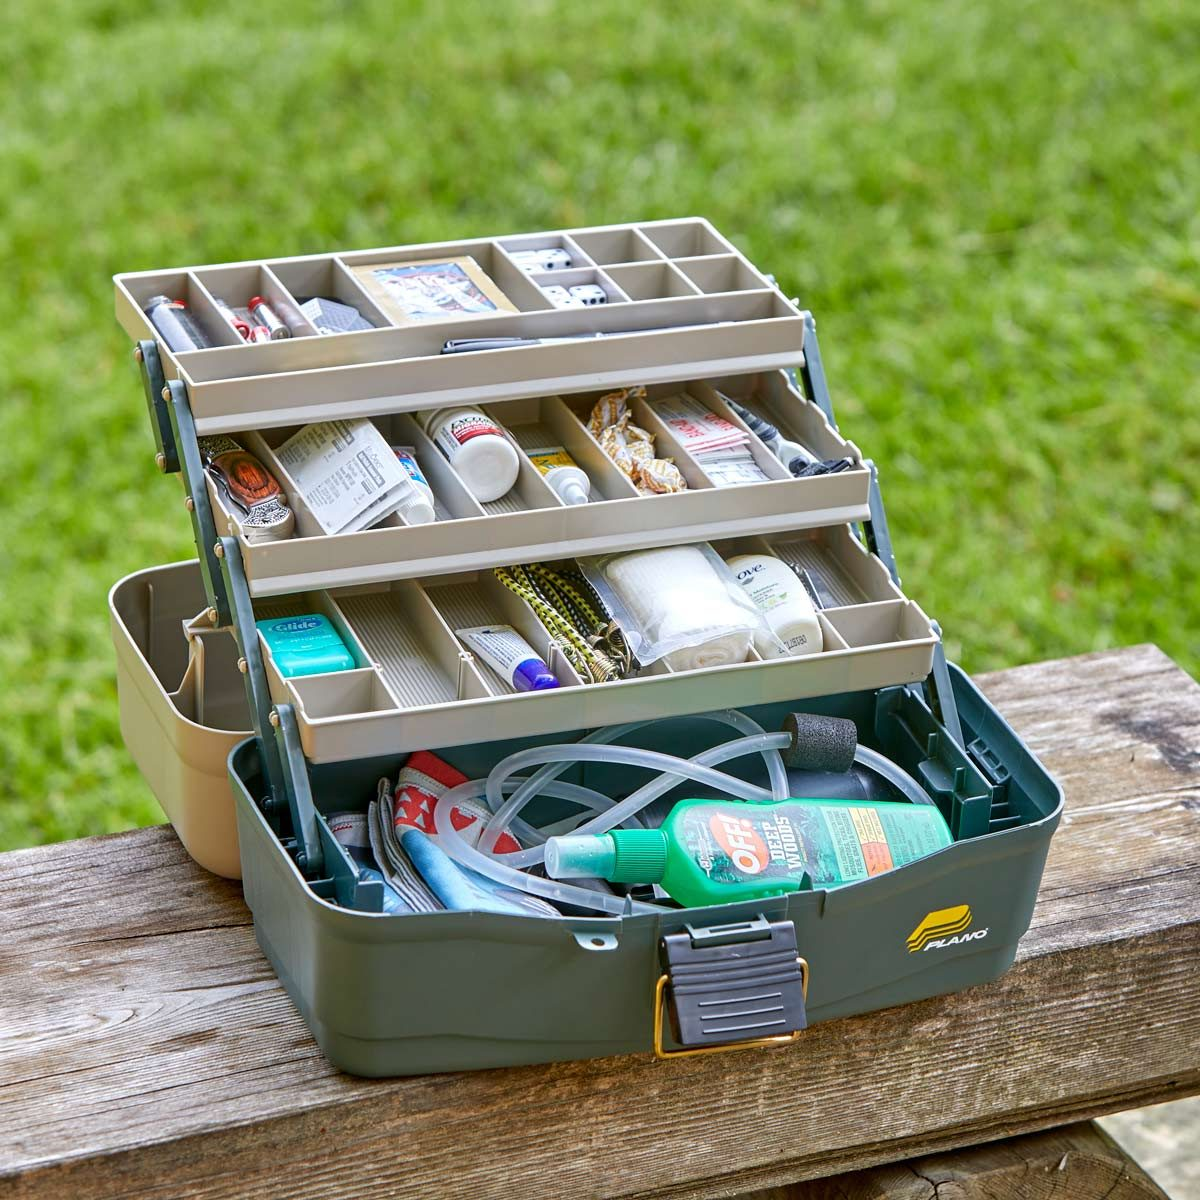 HH utility tackle box camping supplies